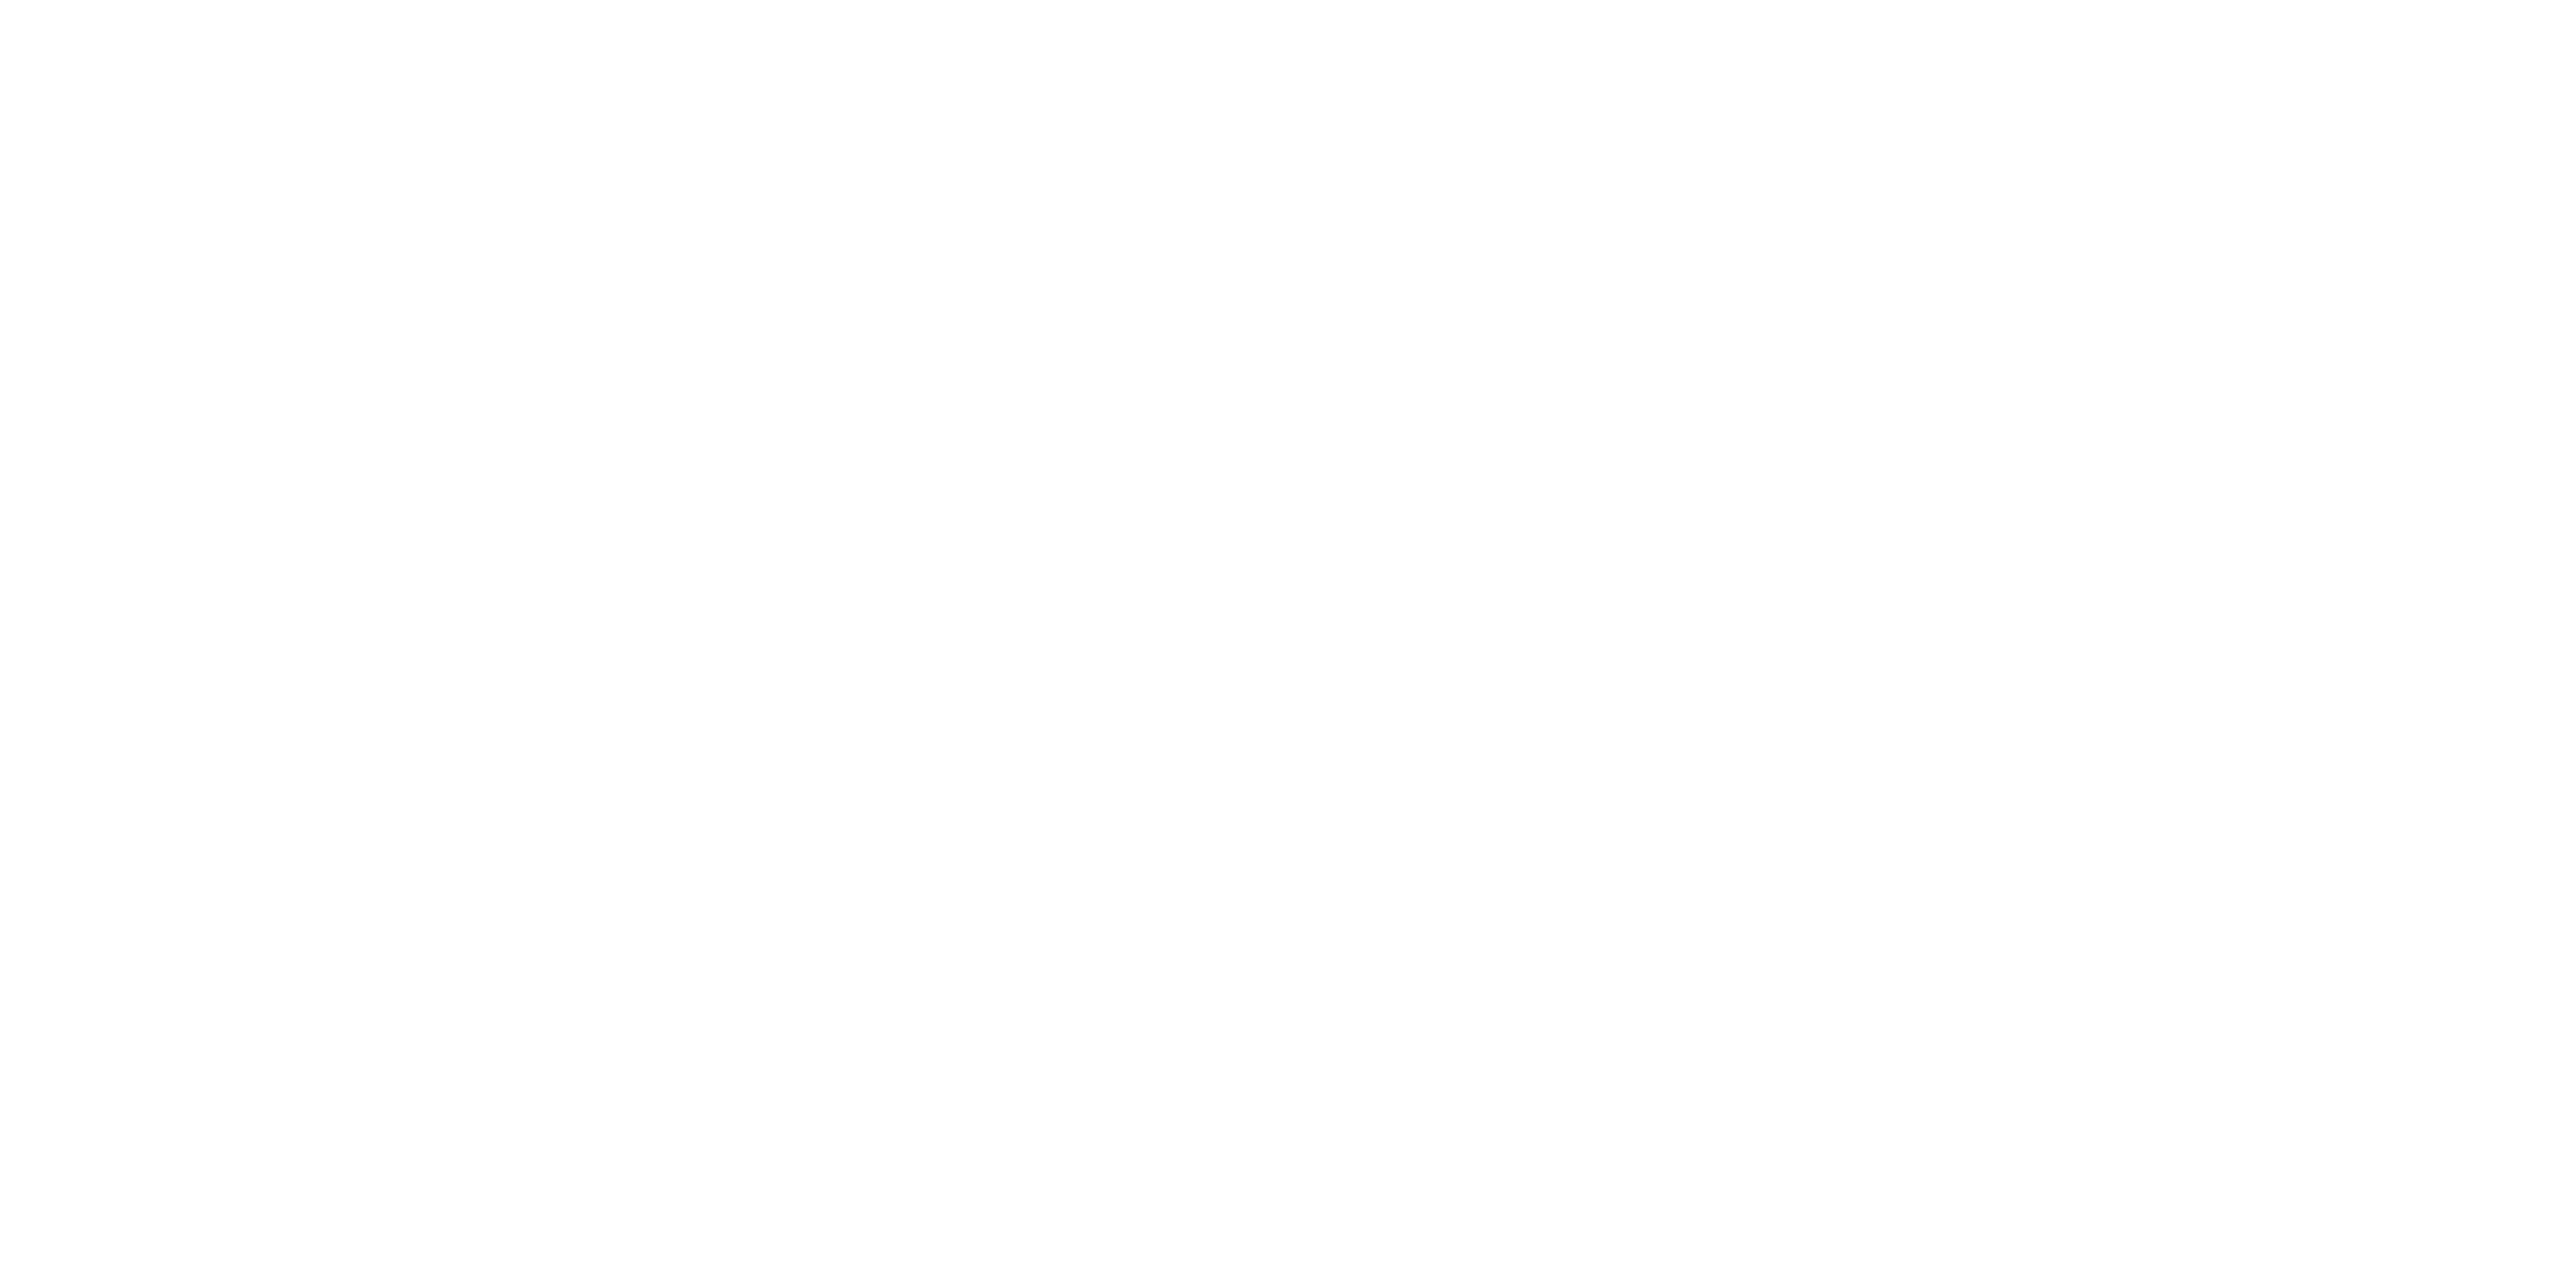 The Santa Fe University of Art and Design